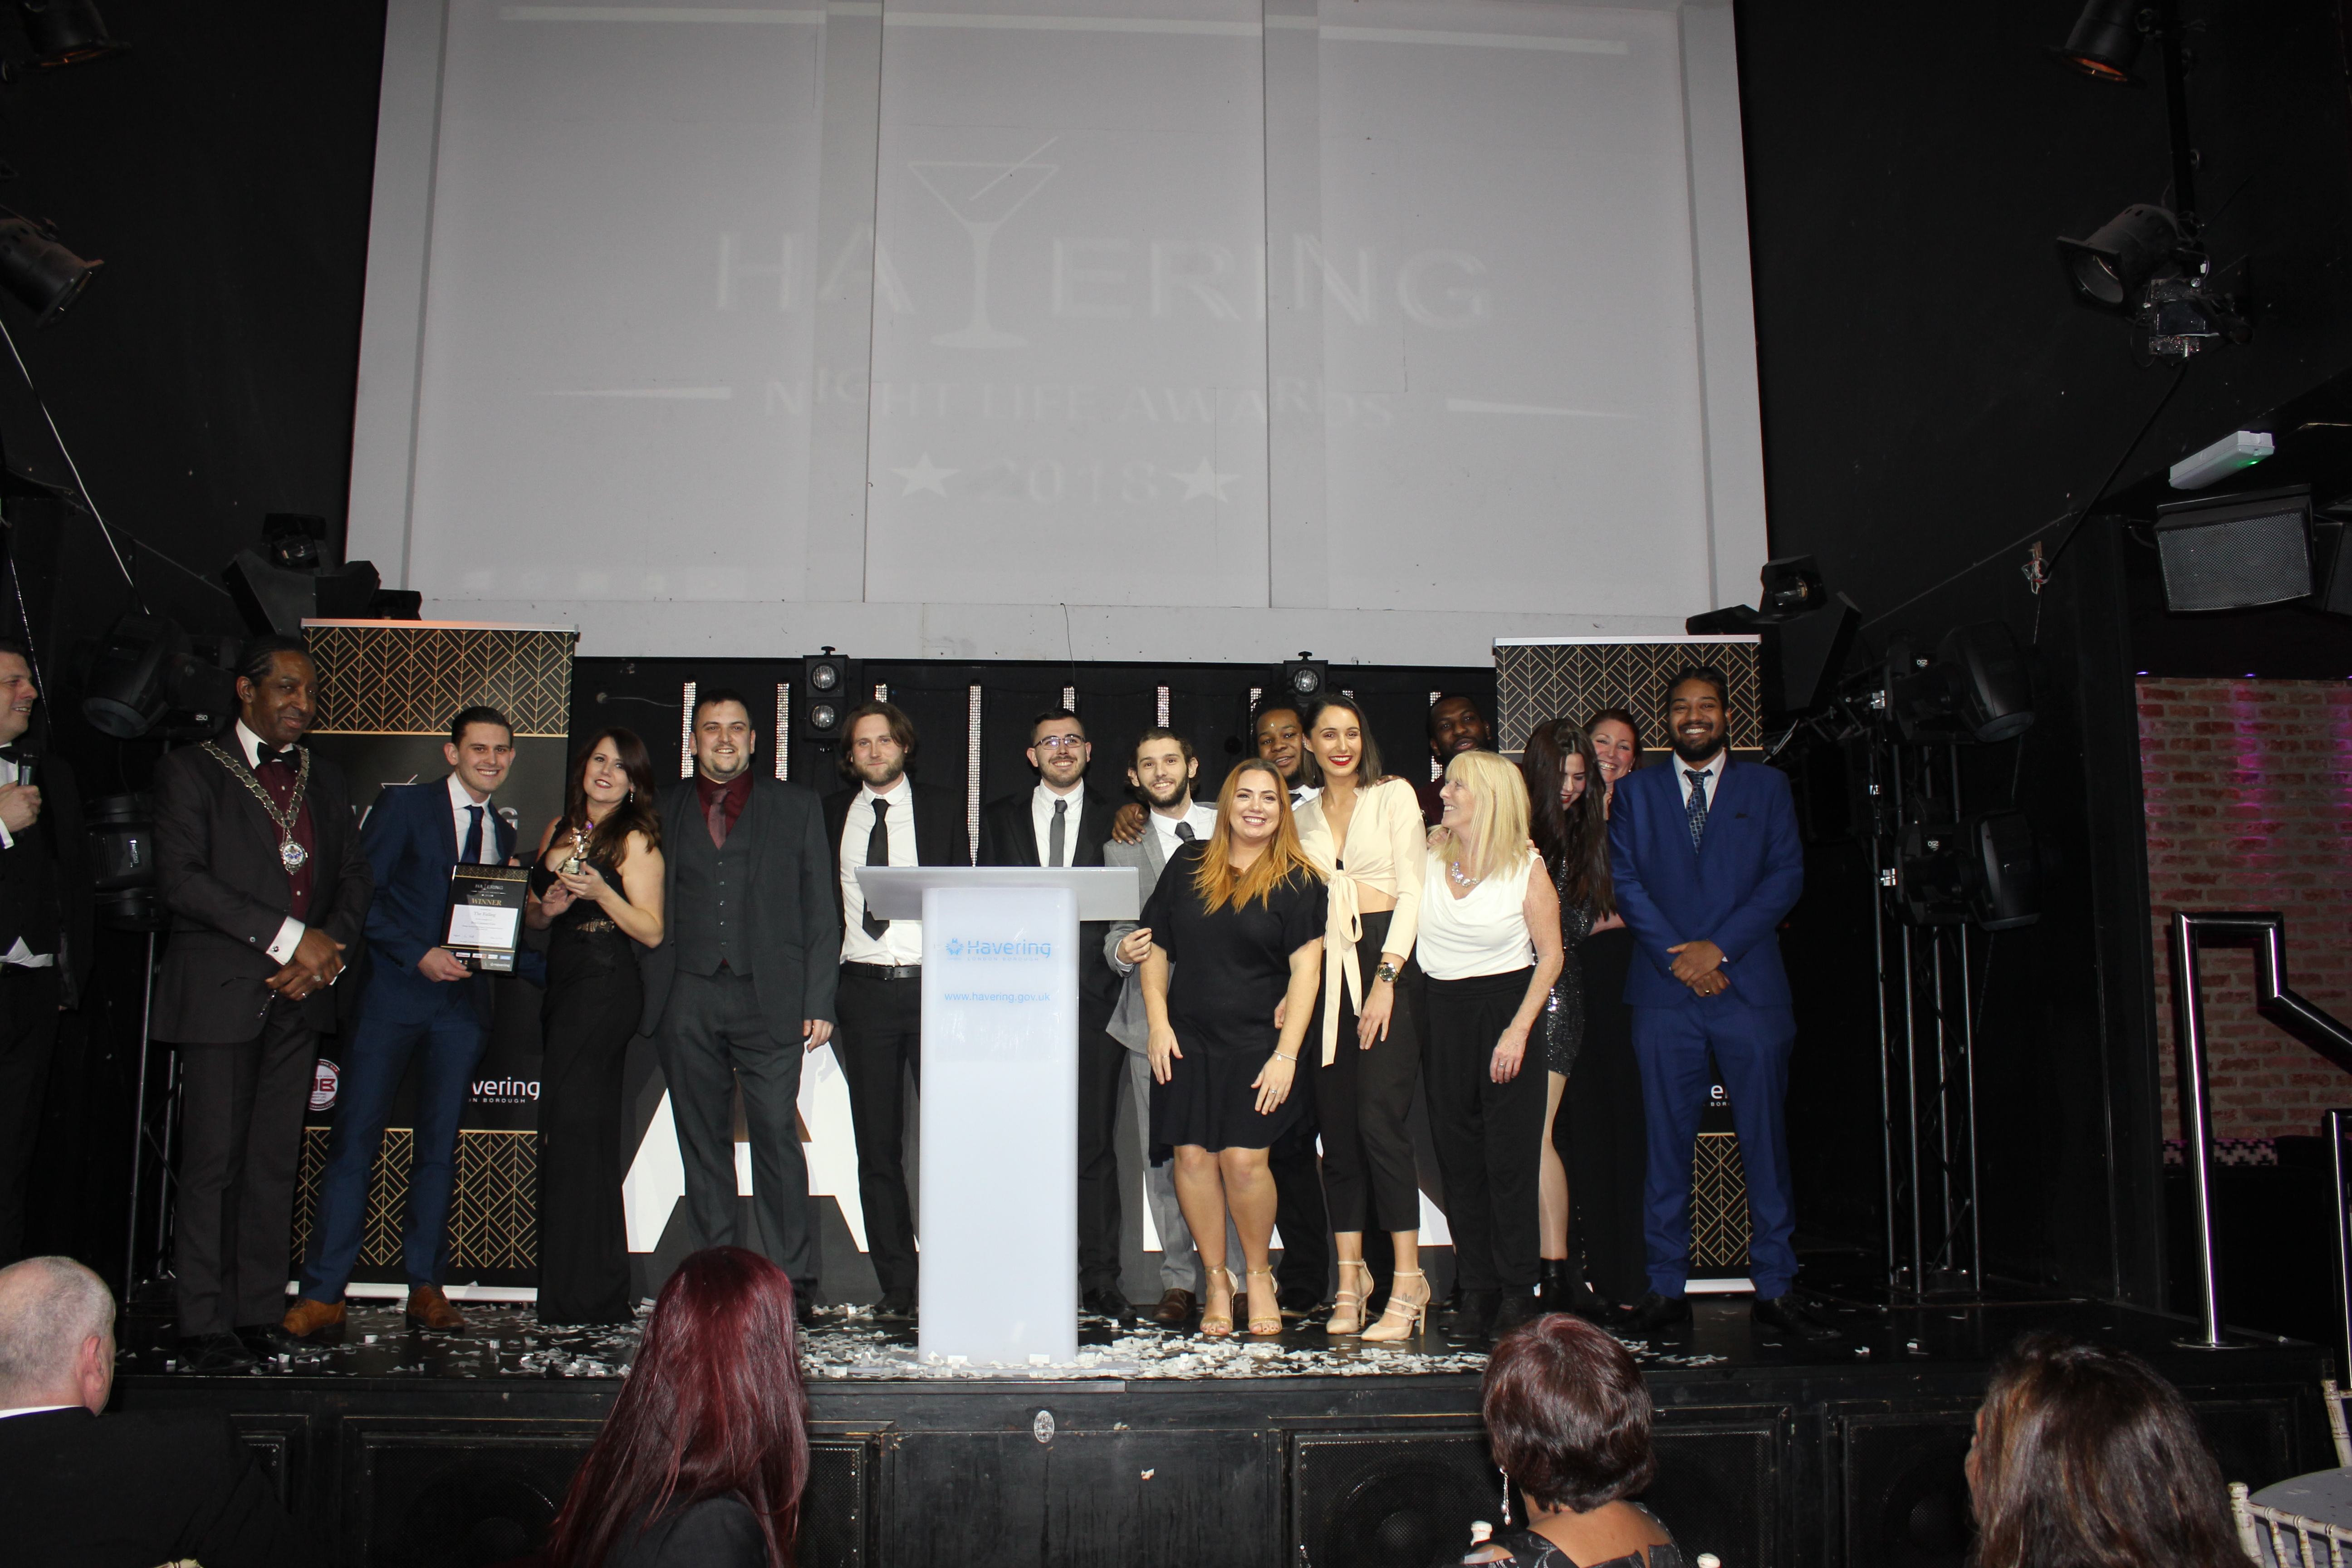 Havering's top venues were awarded at the nightlife awards